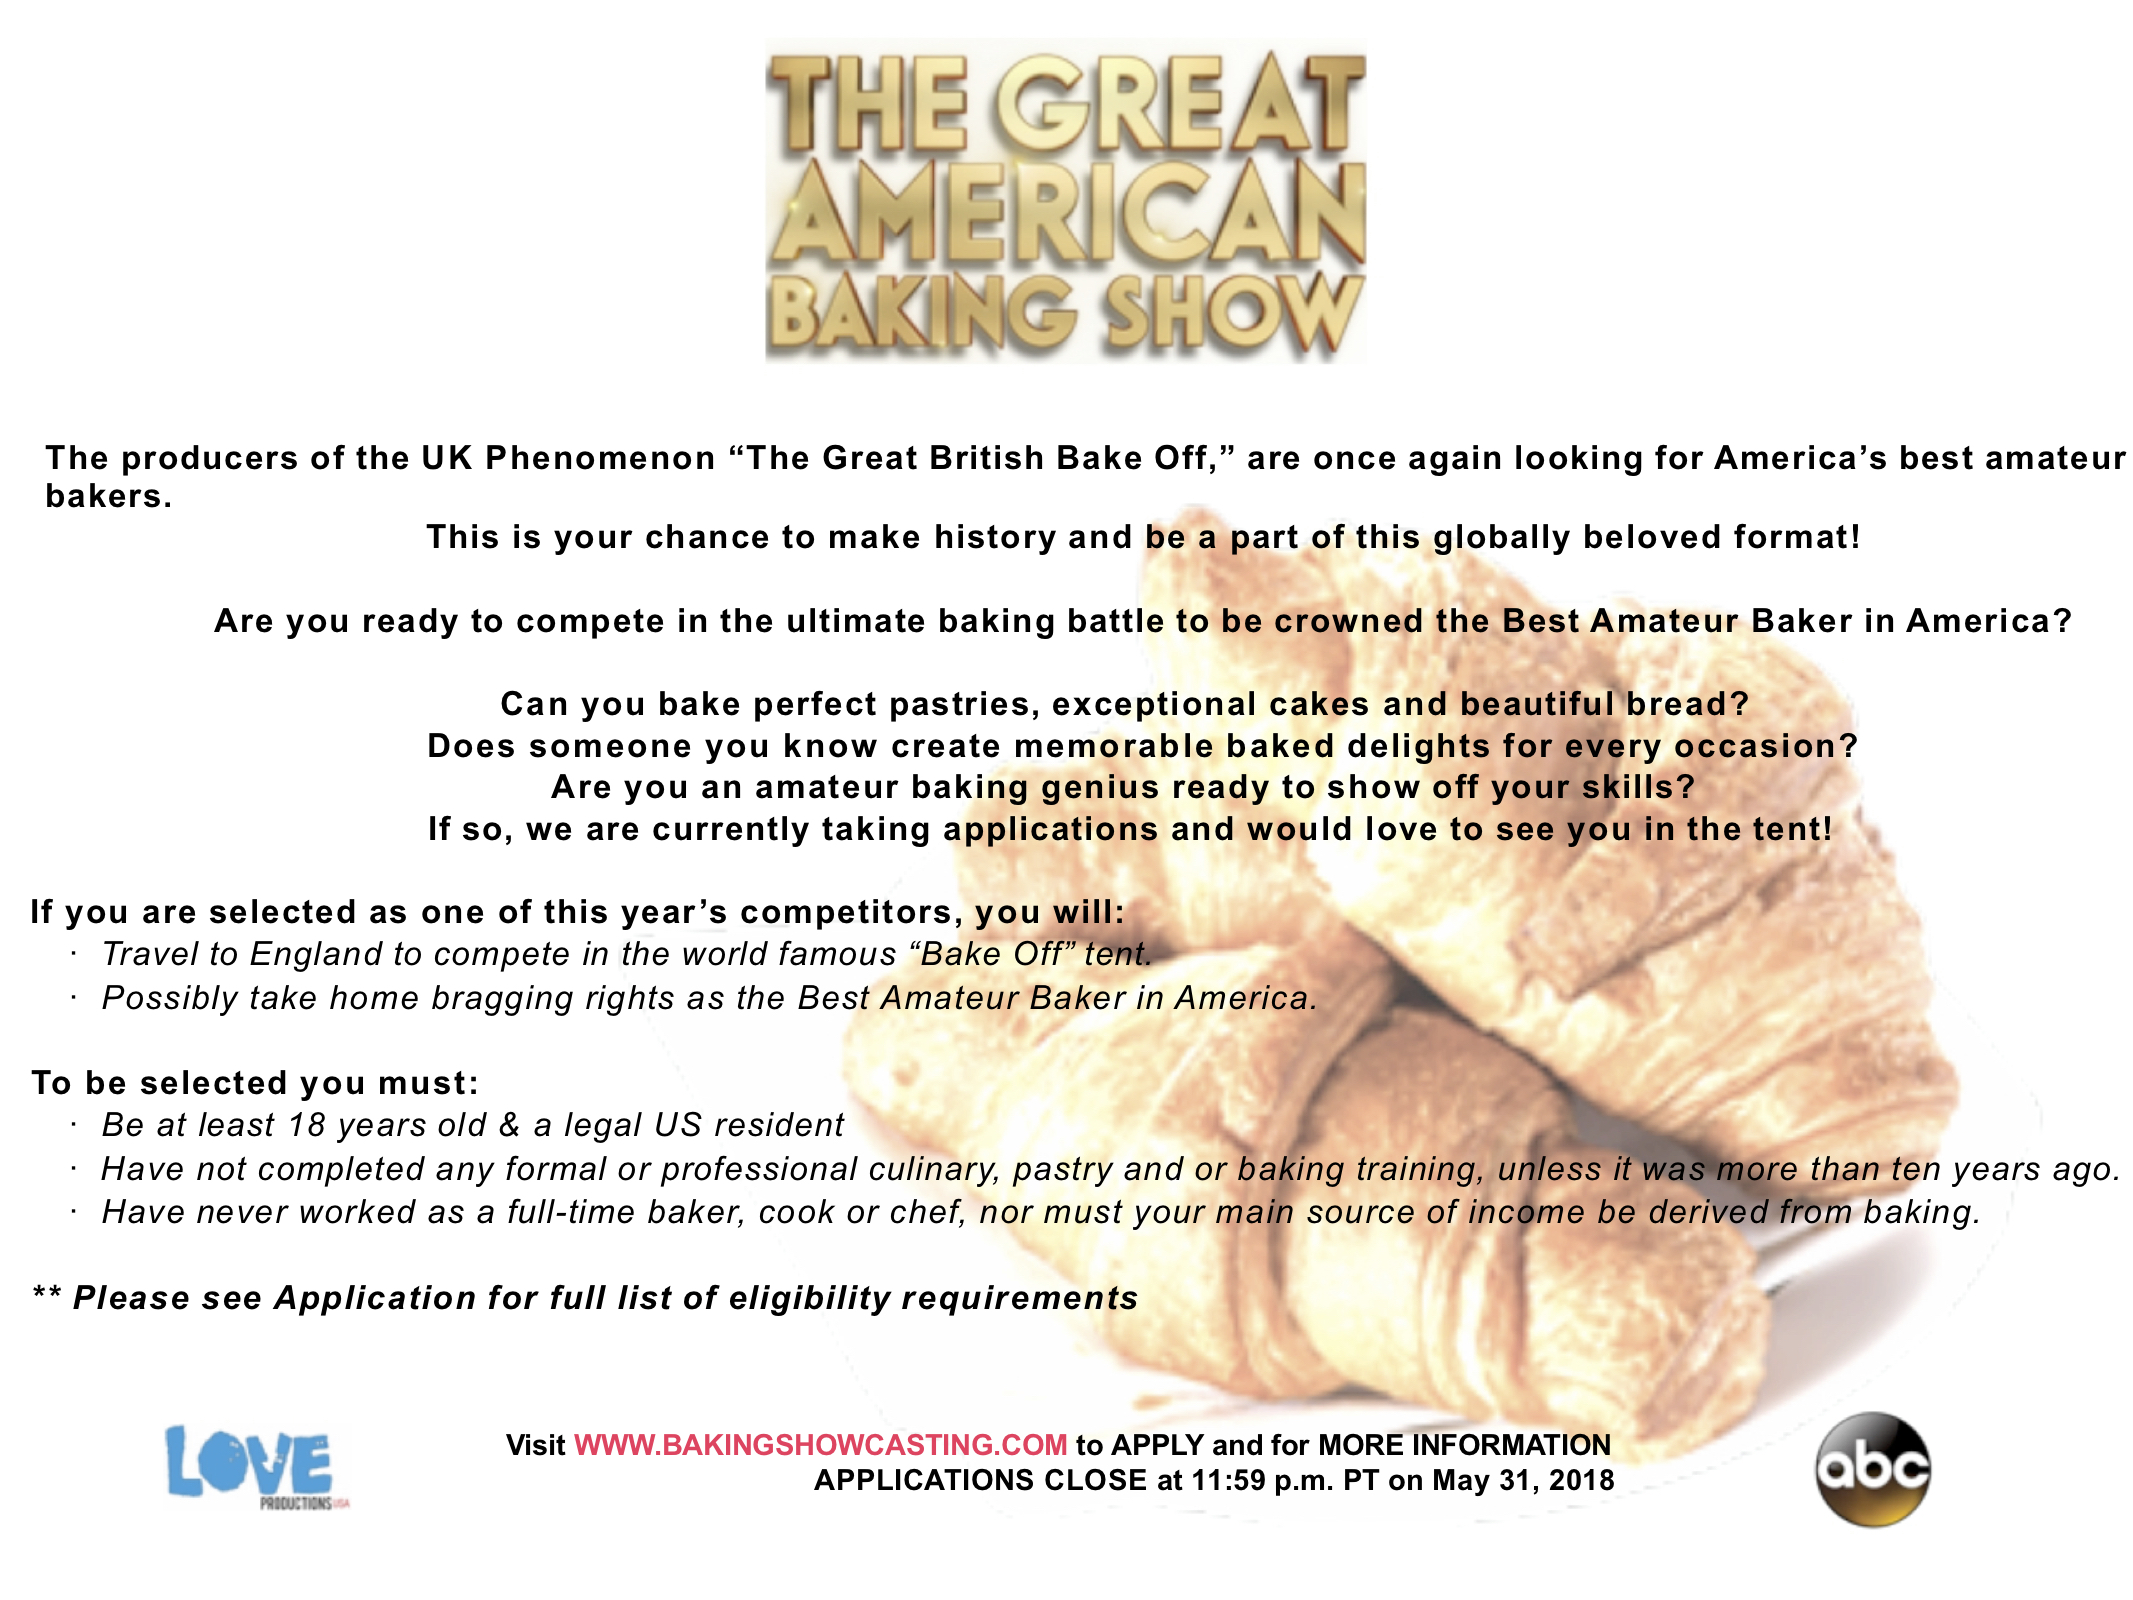 Casting Call: The Great American Baking Show